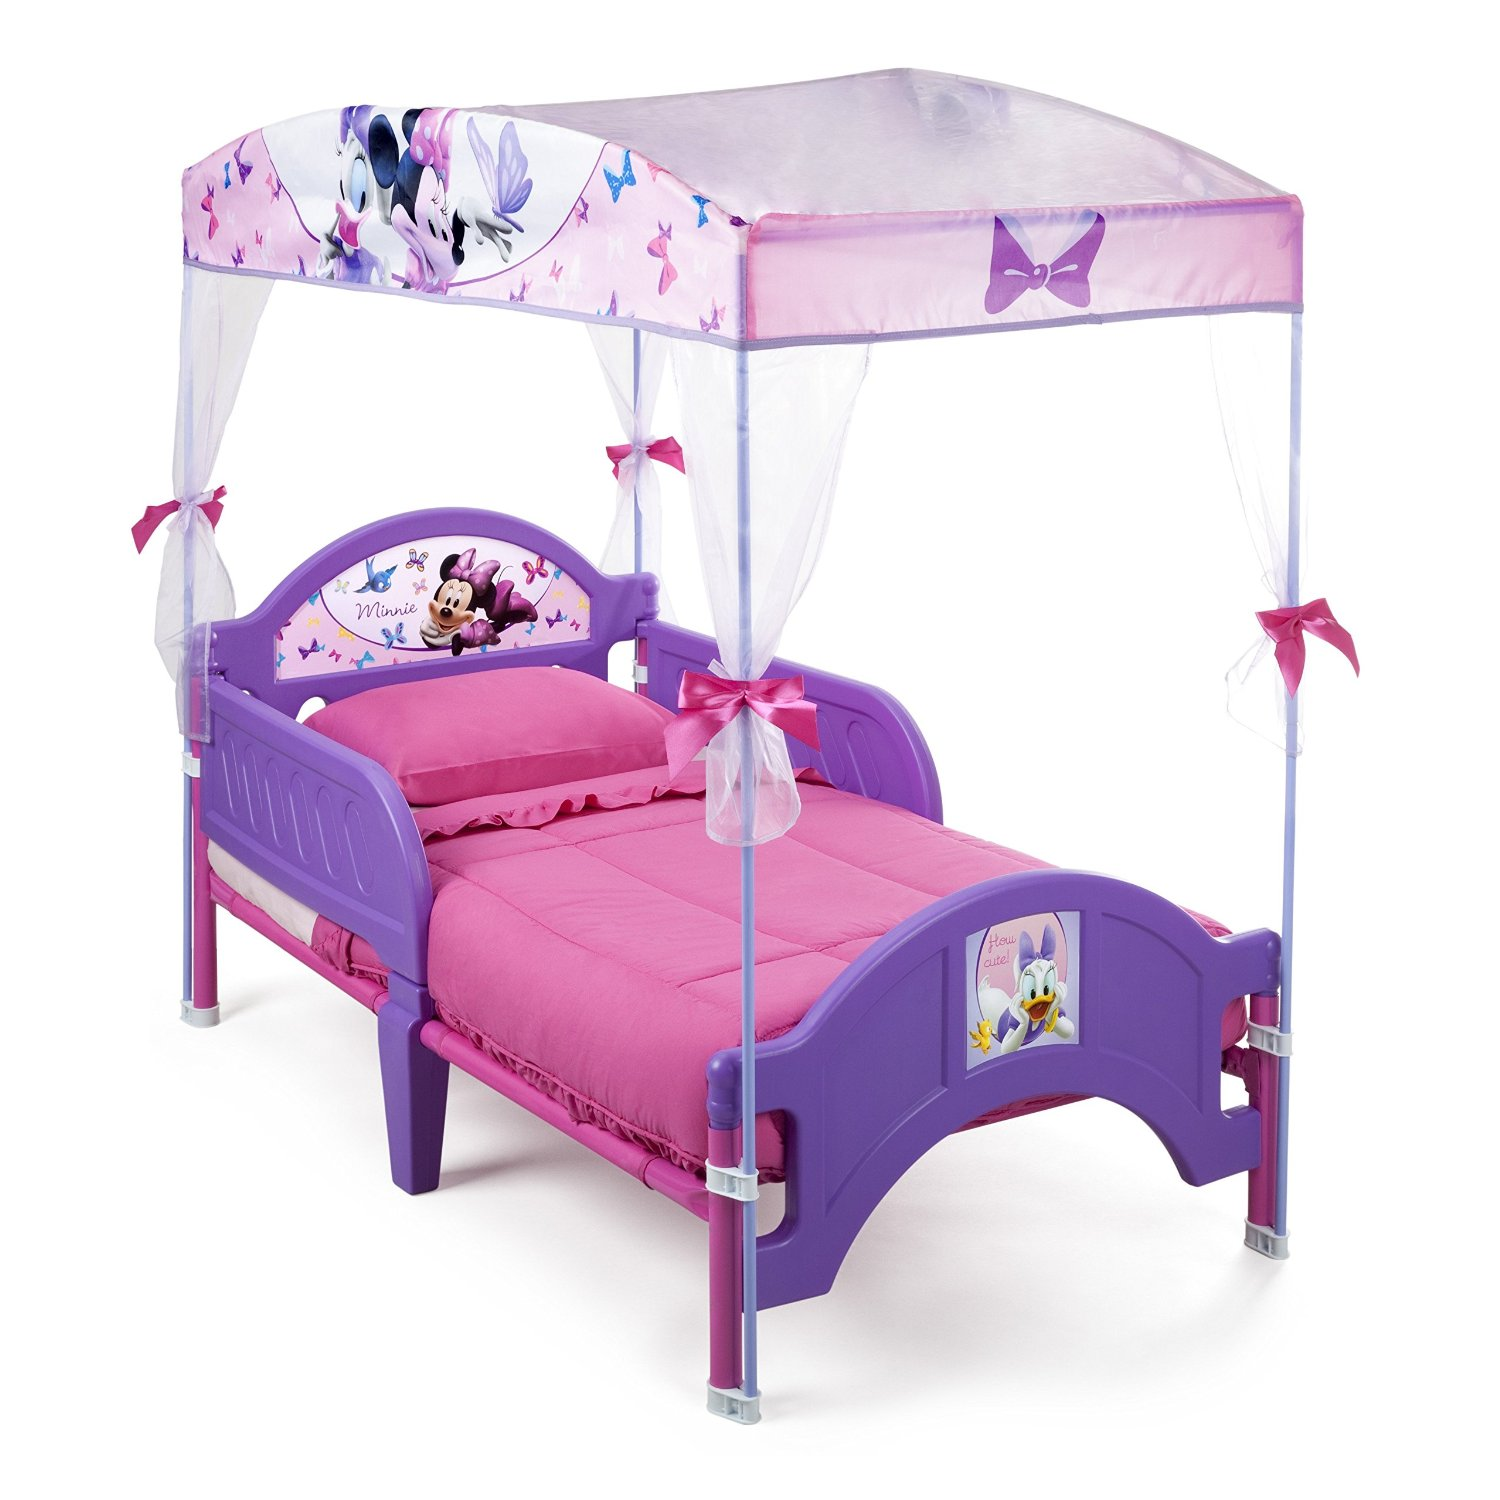 Buy Delta Childrens Products Minnie Mouse Canopy Toddler ...